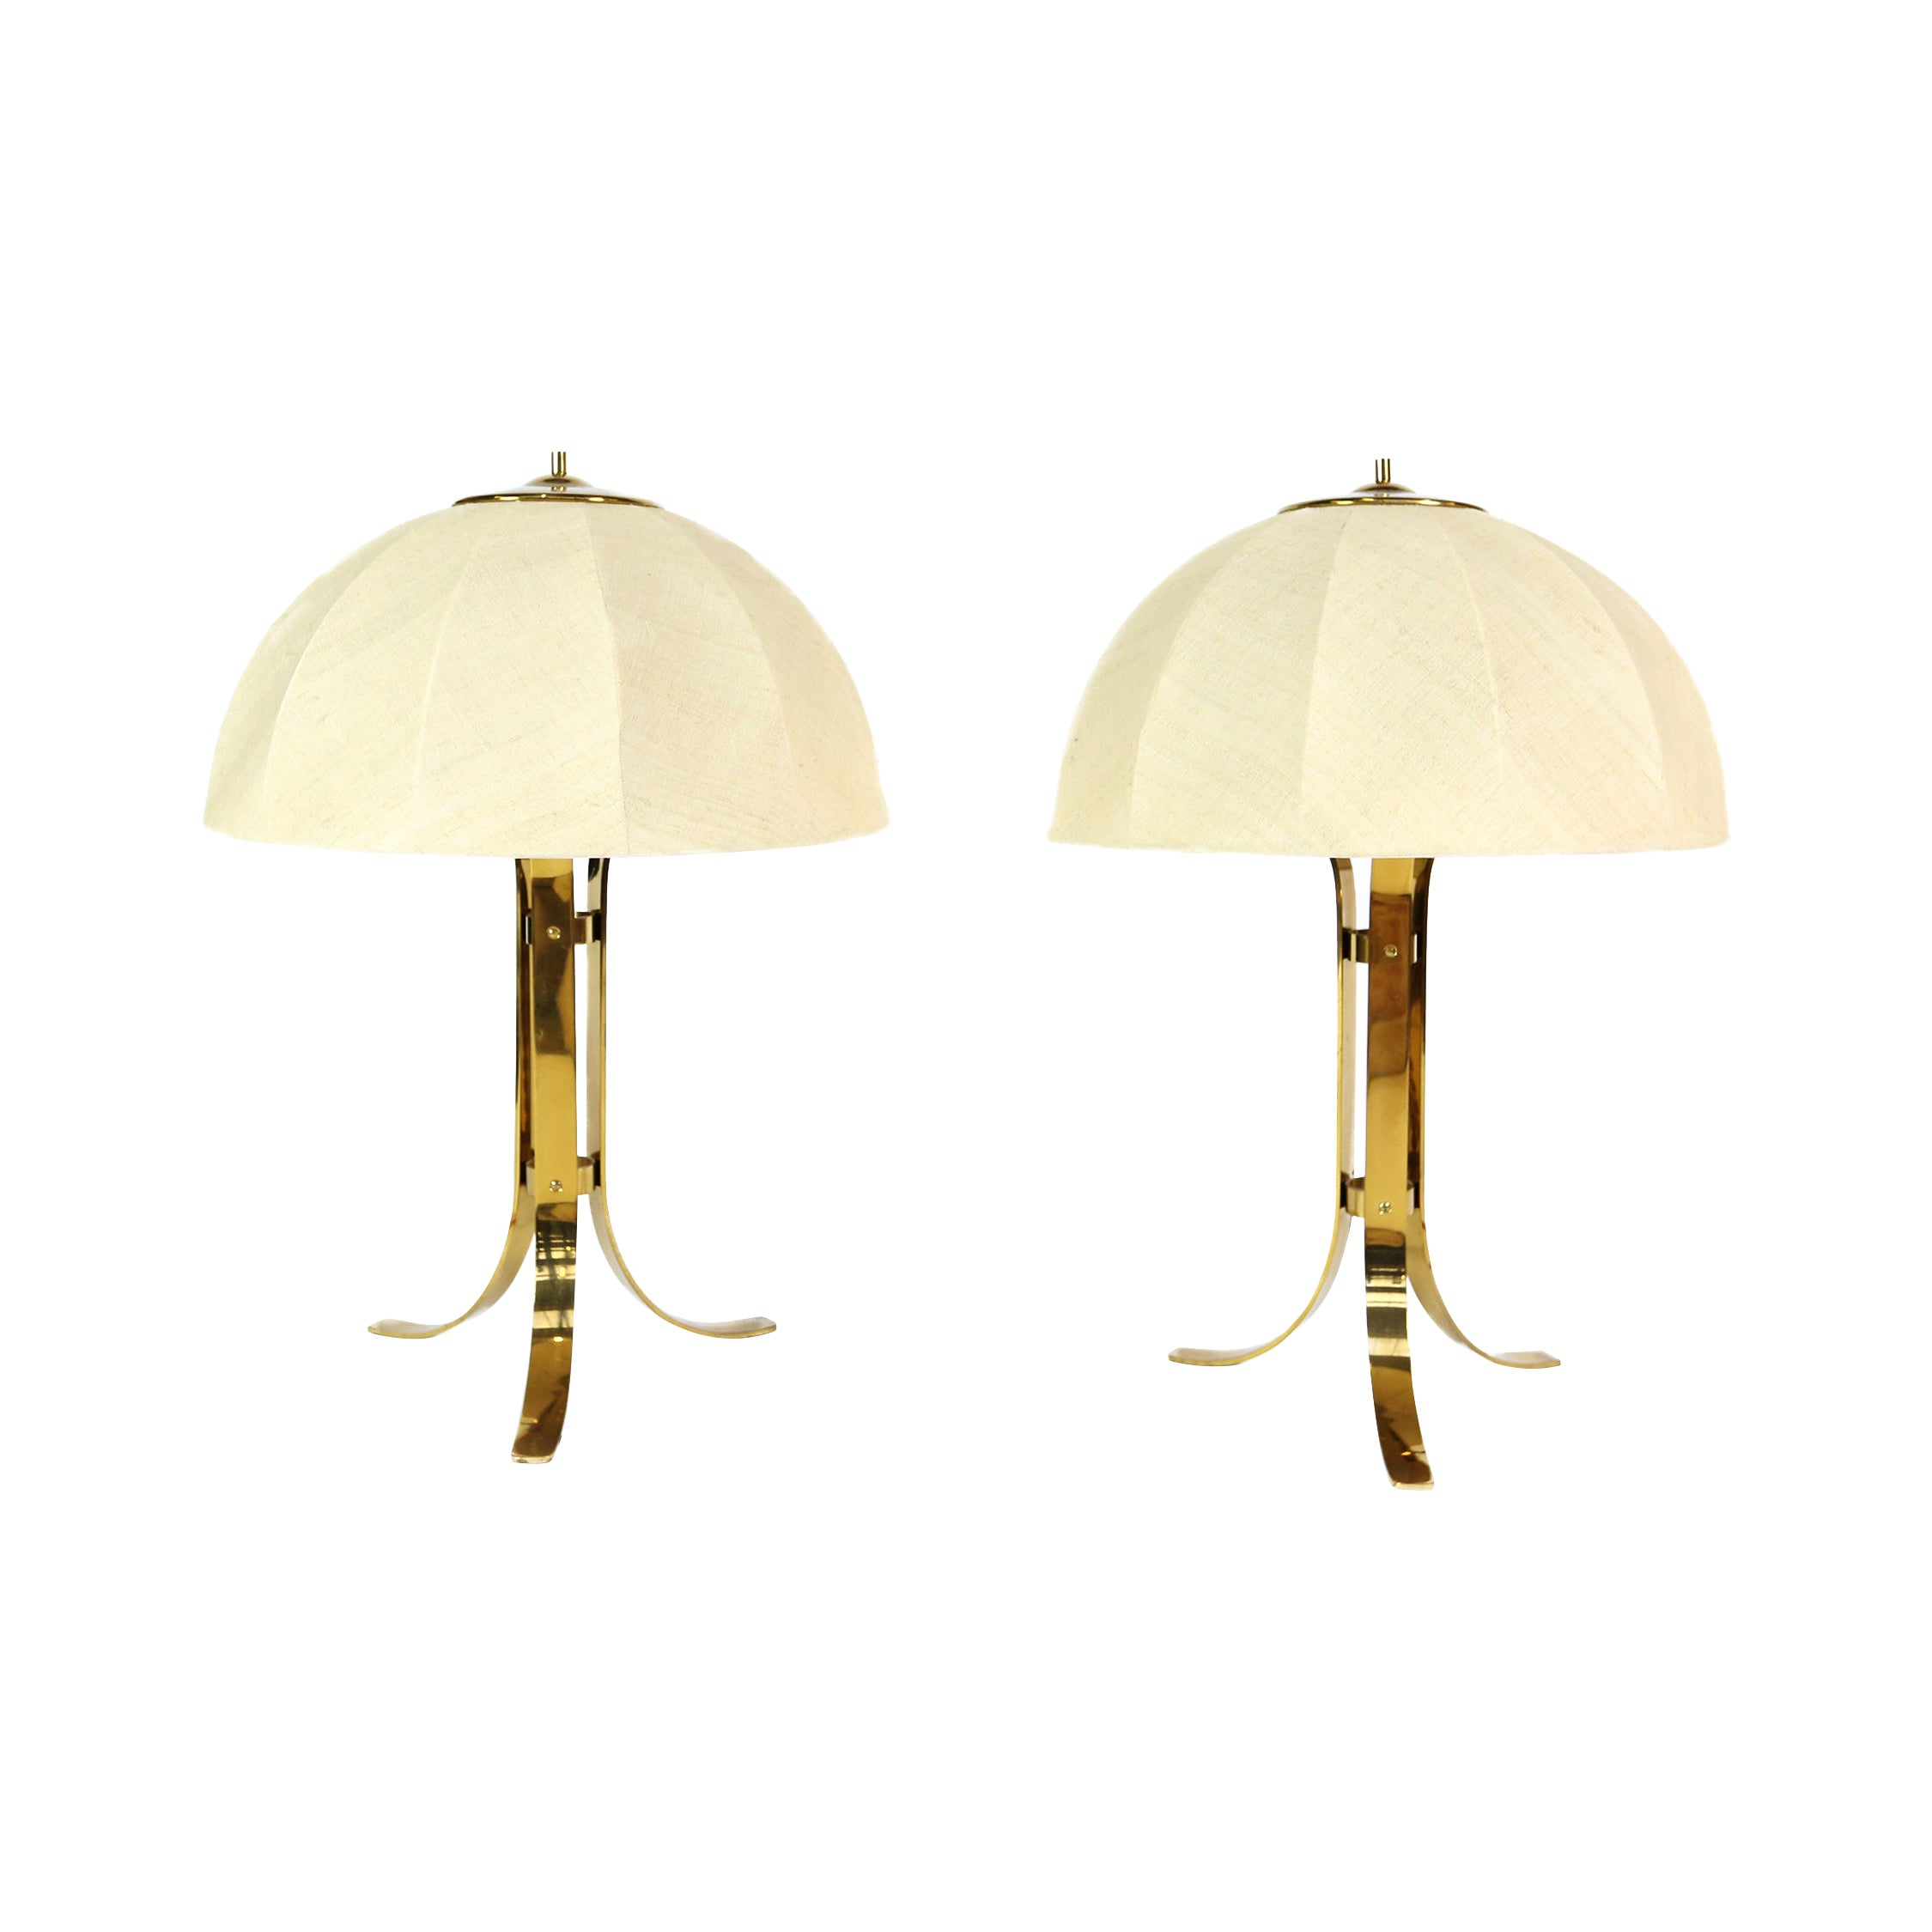 Pair of Brass Table Lamps, Italy, 1960s